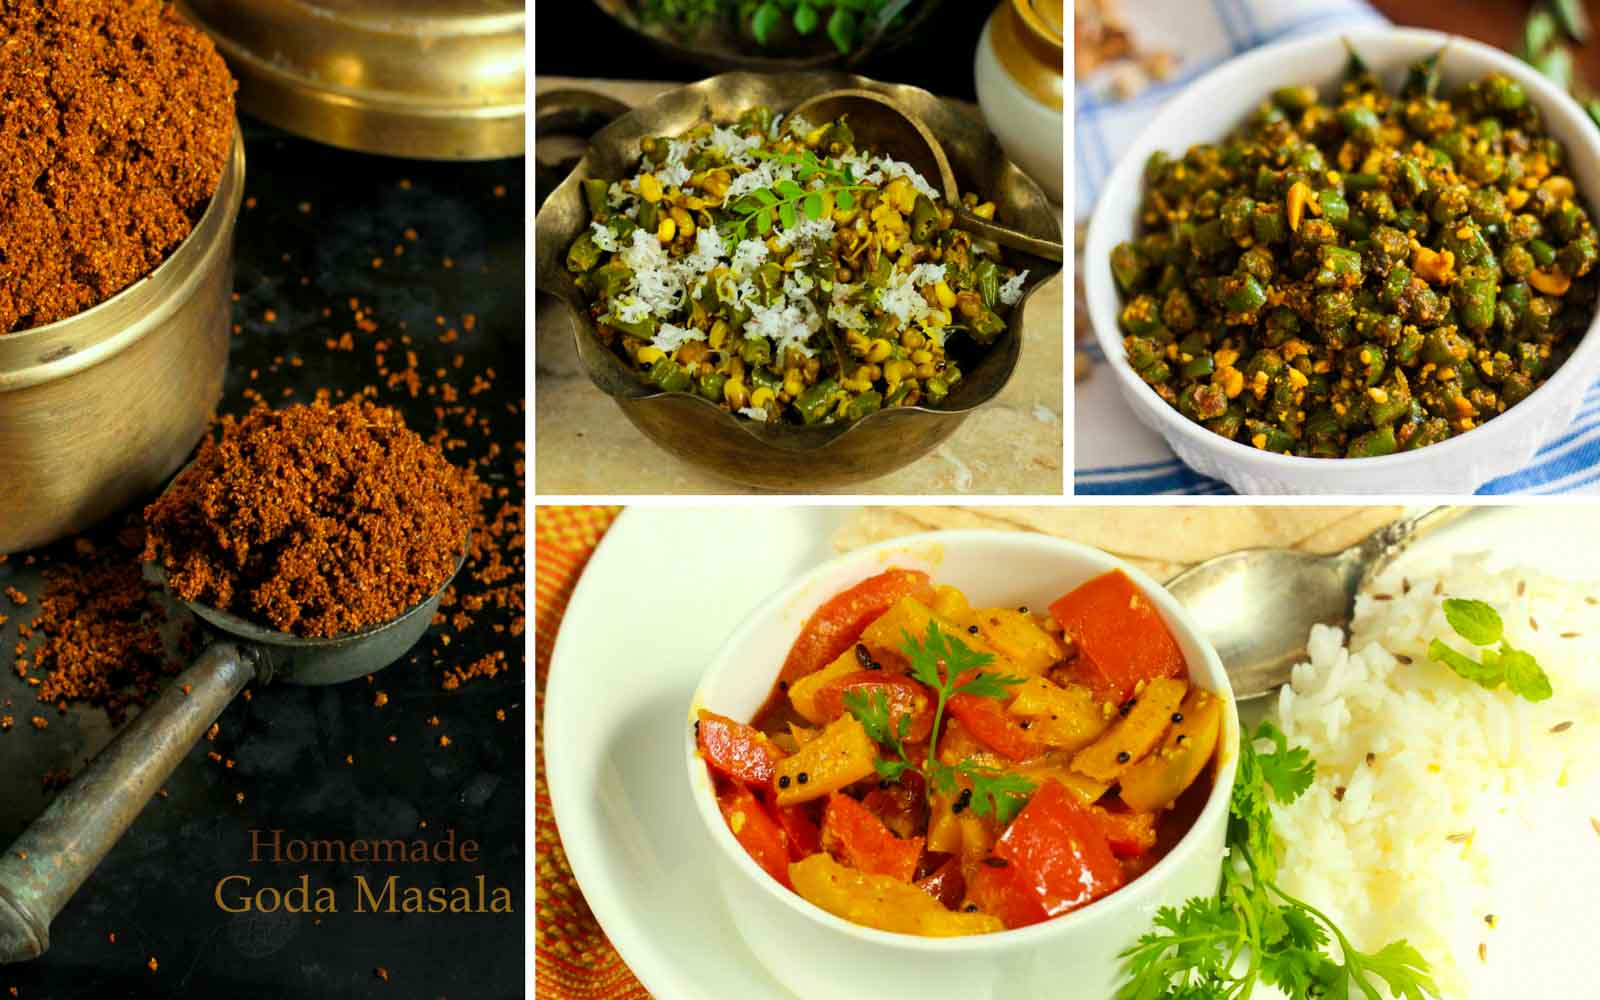 5 maharashtrian side dish recipes using goda masala by archanas kitchen 5 maharashtrian side dish recipes using goda masala forumfinder Image collections